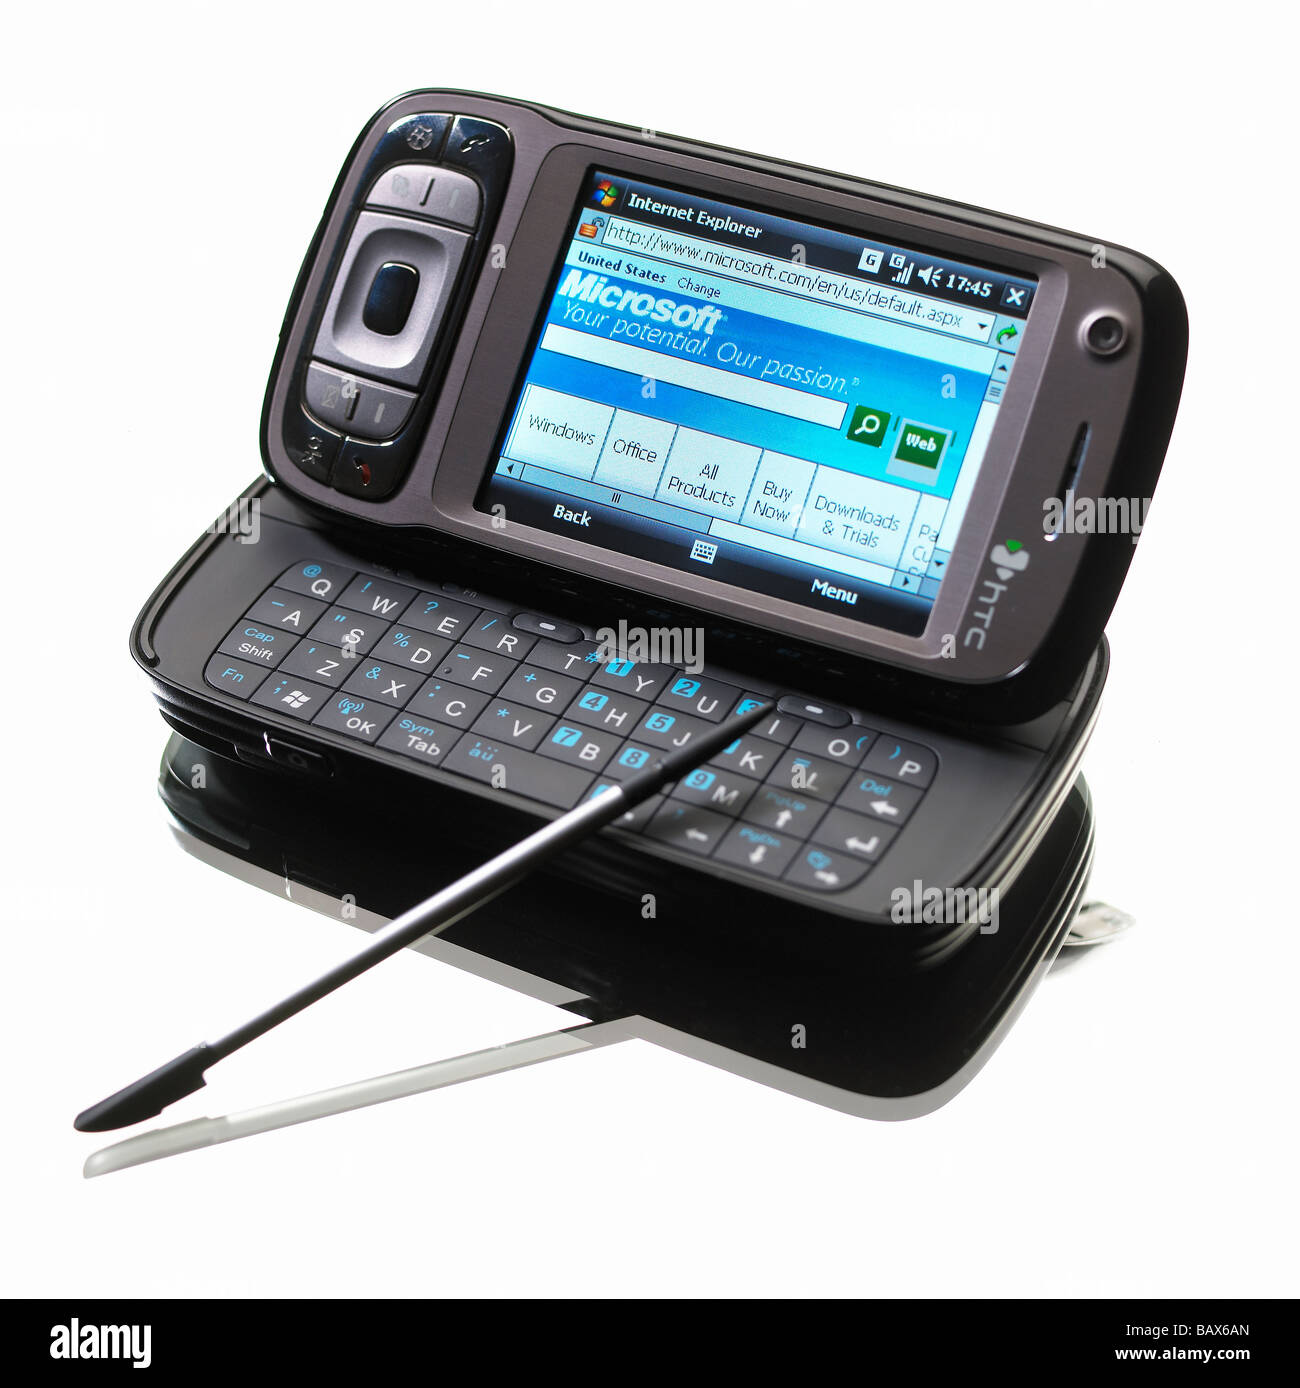 MOBILE PHONE PDA INTERNET ACCESS - Stock Image